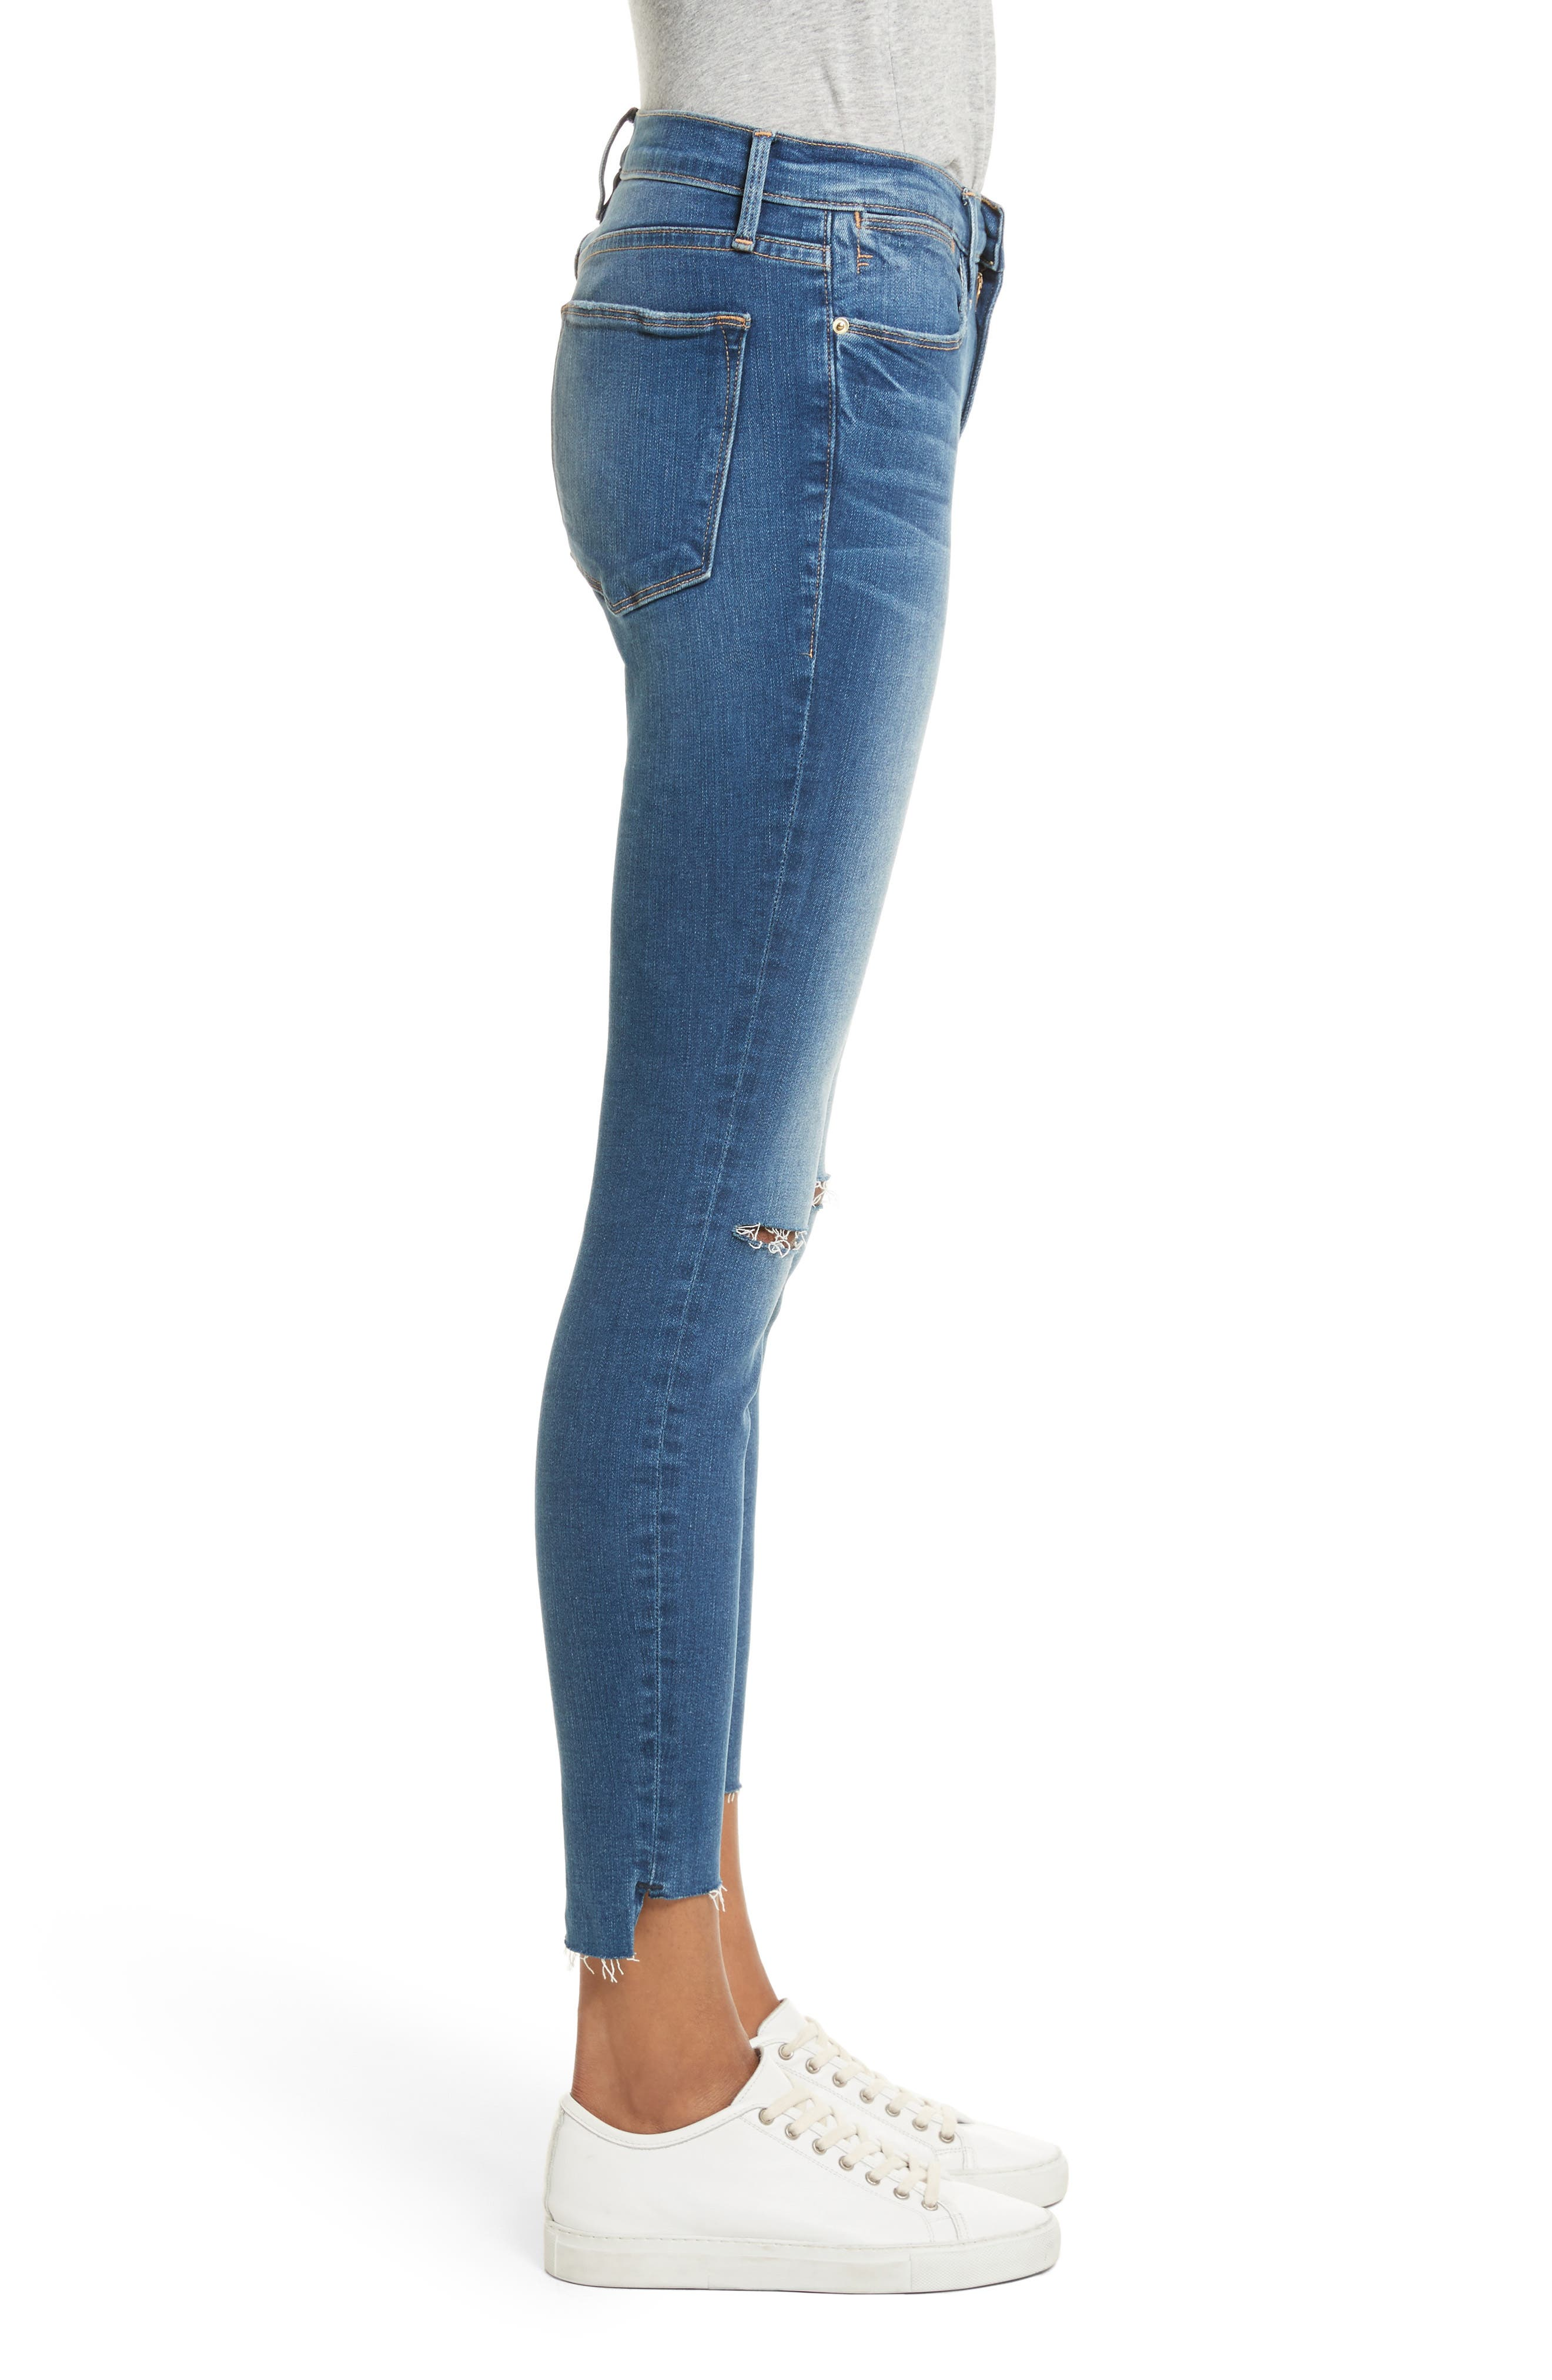 Alternate Image 3  - FRAME Le High High Waist Ankle Skinny Jeans